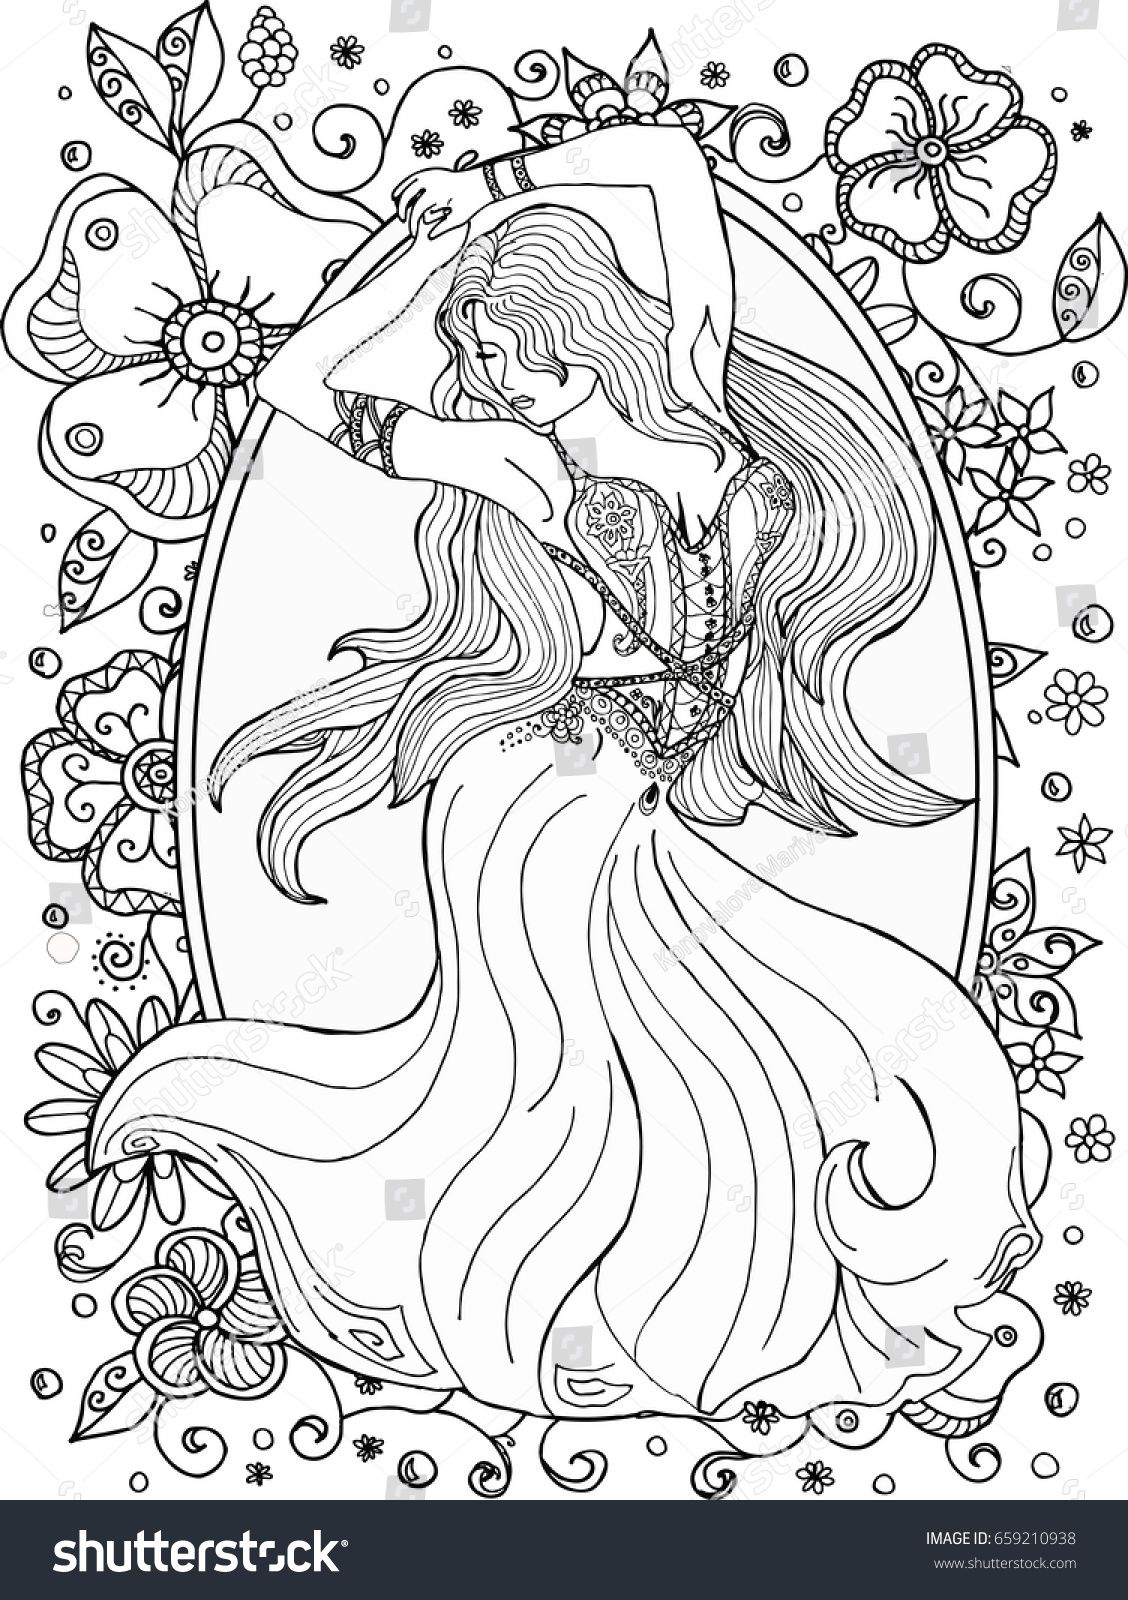 Coloring pages for adults girl in a dress dancing. | aa ...